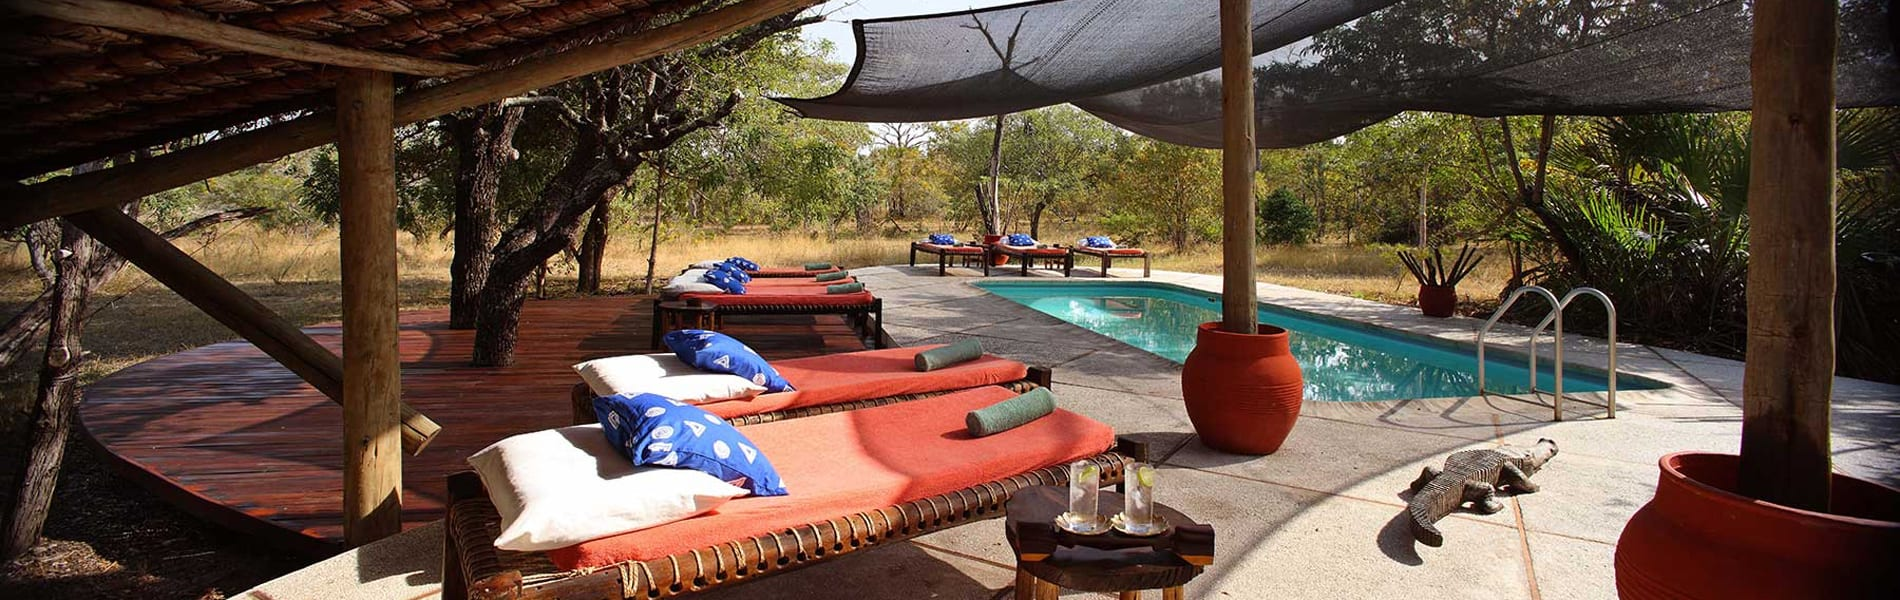 Siwandu Camp pool area